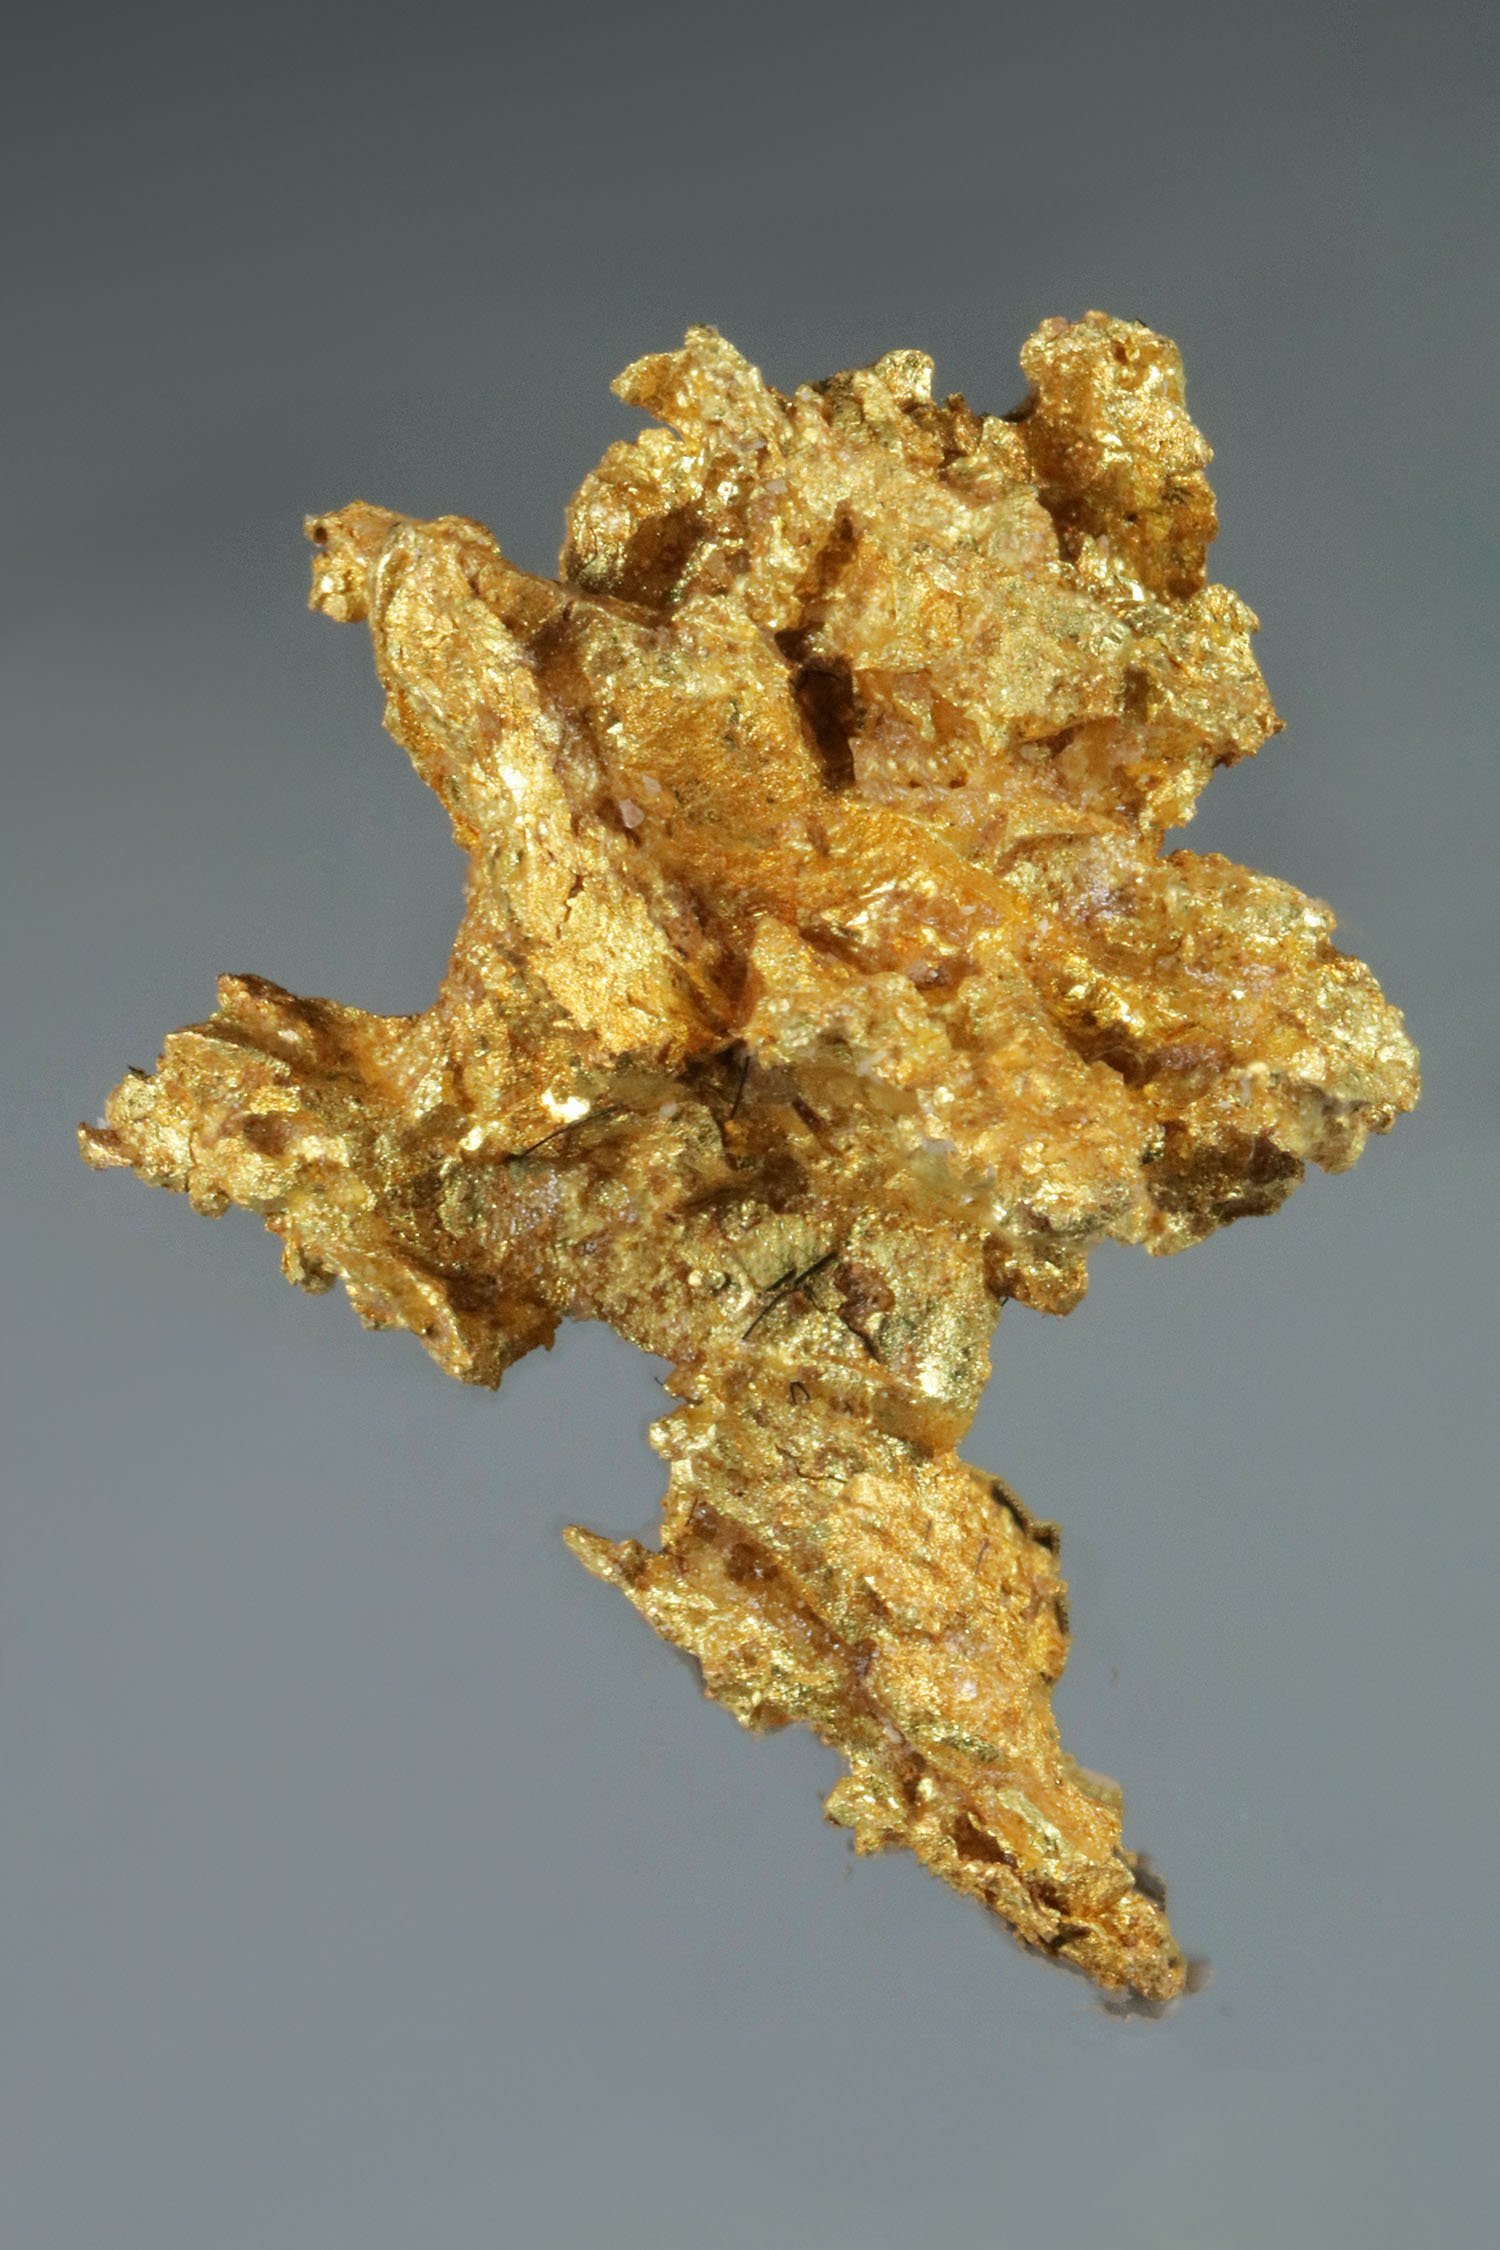 Sonora, Mexico Crystalline Gold